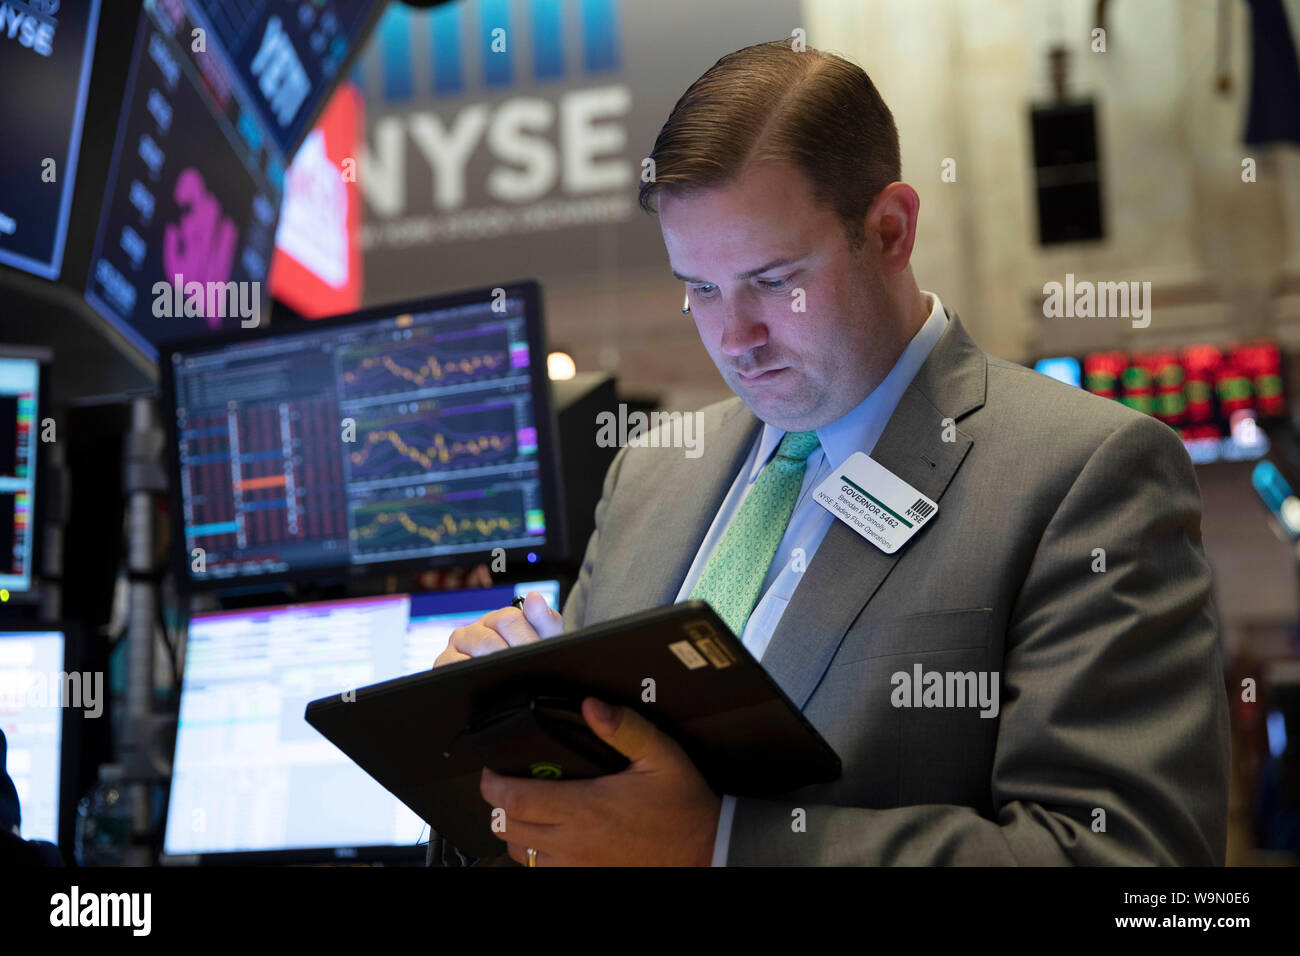 New York, USA. 14th Aug, 2019. A trader works at the New York Stock Exchange in New York, the United States, on Aug. 14, 2019. U.S. stocks closed remarkably lower on Wednesday, as persisting fears over an imminent recession struck a blow to the already-dampened investor sentiment. The Dow plunged 800.49 points, or 3.05 percent to 25,479.42, marking the largest daily decline of the year so far. The S&P 500 decreased 85.72 points, or 2.93 percent, to 2,840.60. Credit: Xinhua/Alamy Live News Credit: Xinhua/Alamy Live News Stock Photo